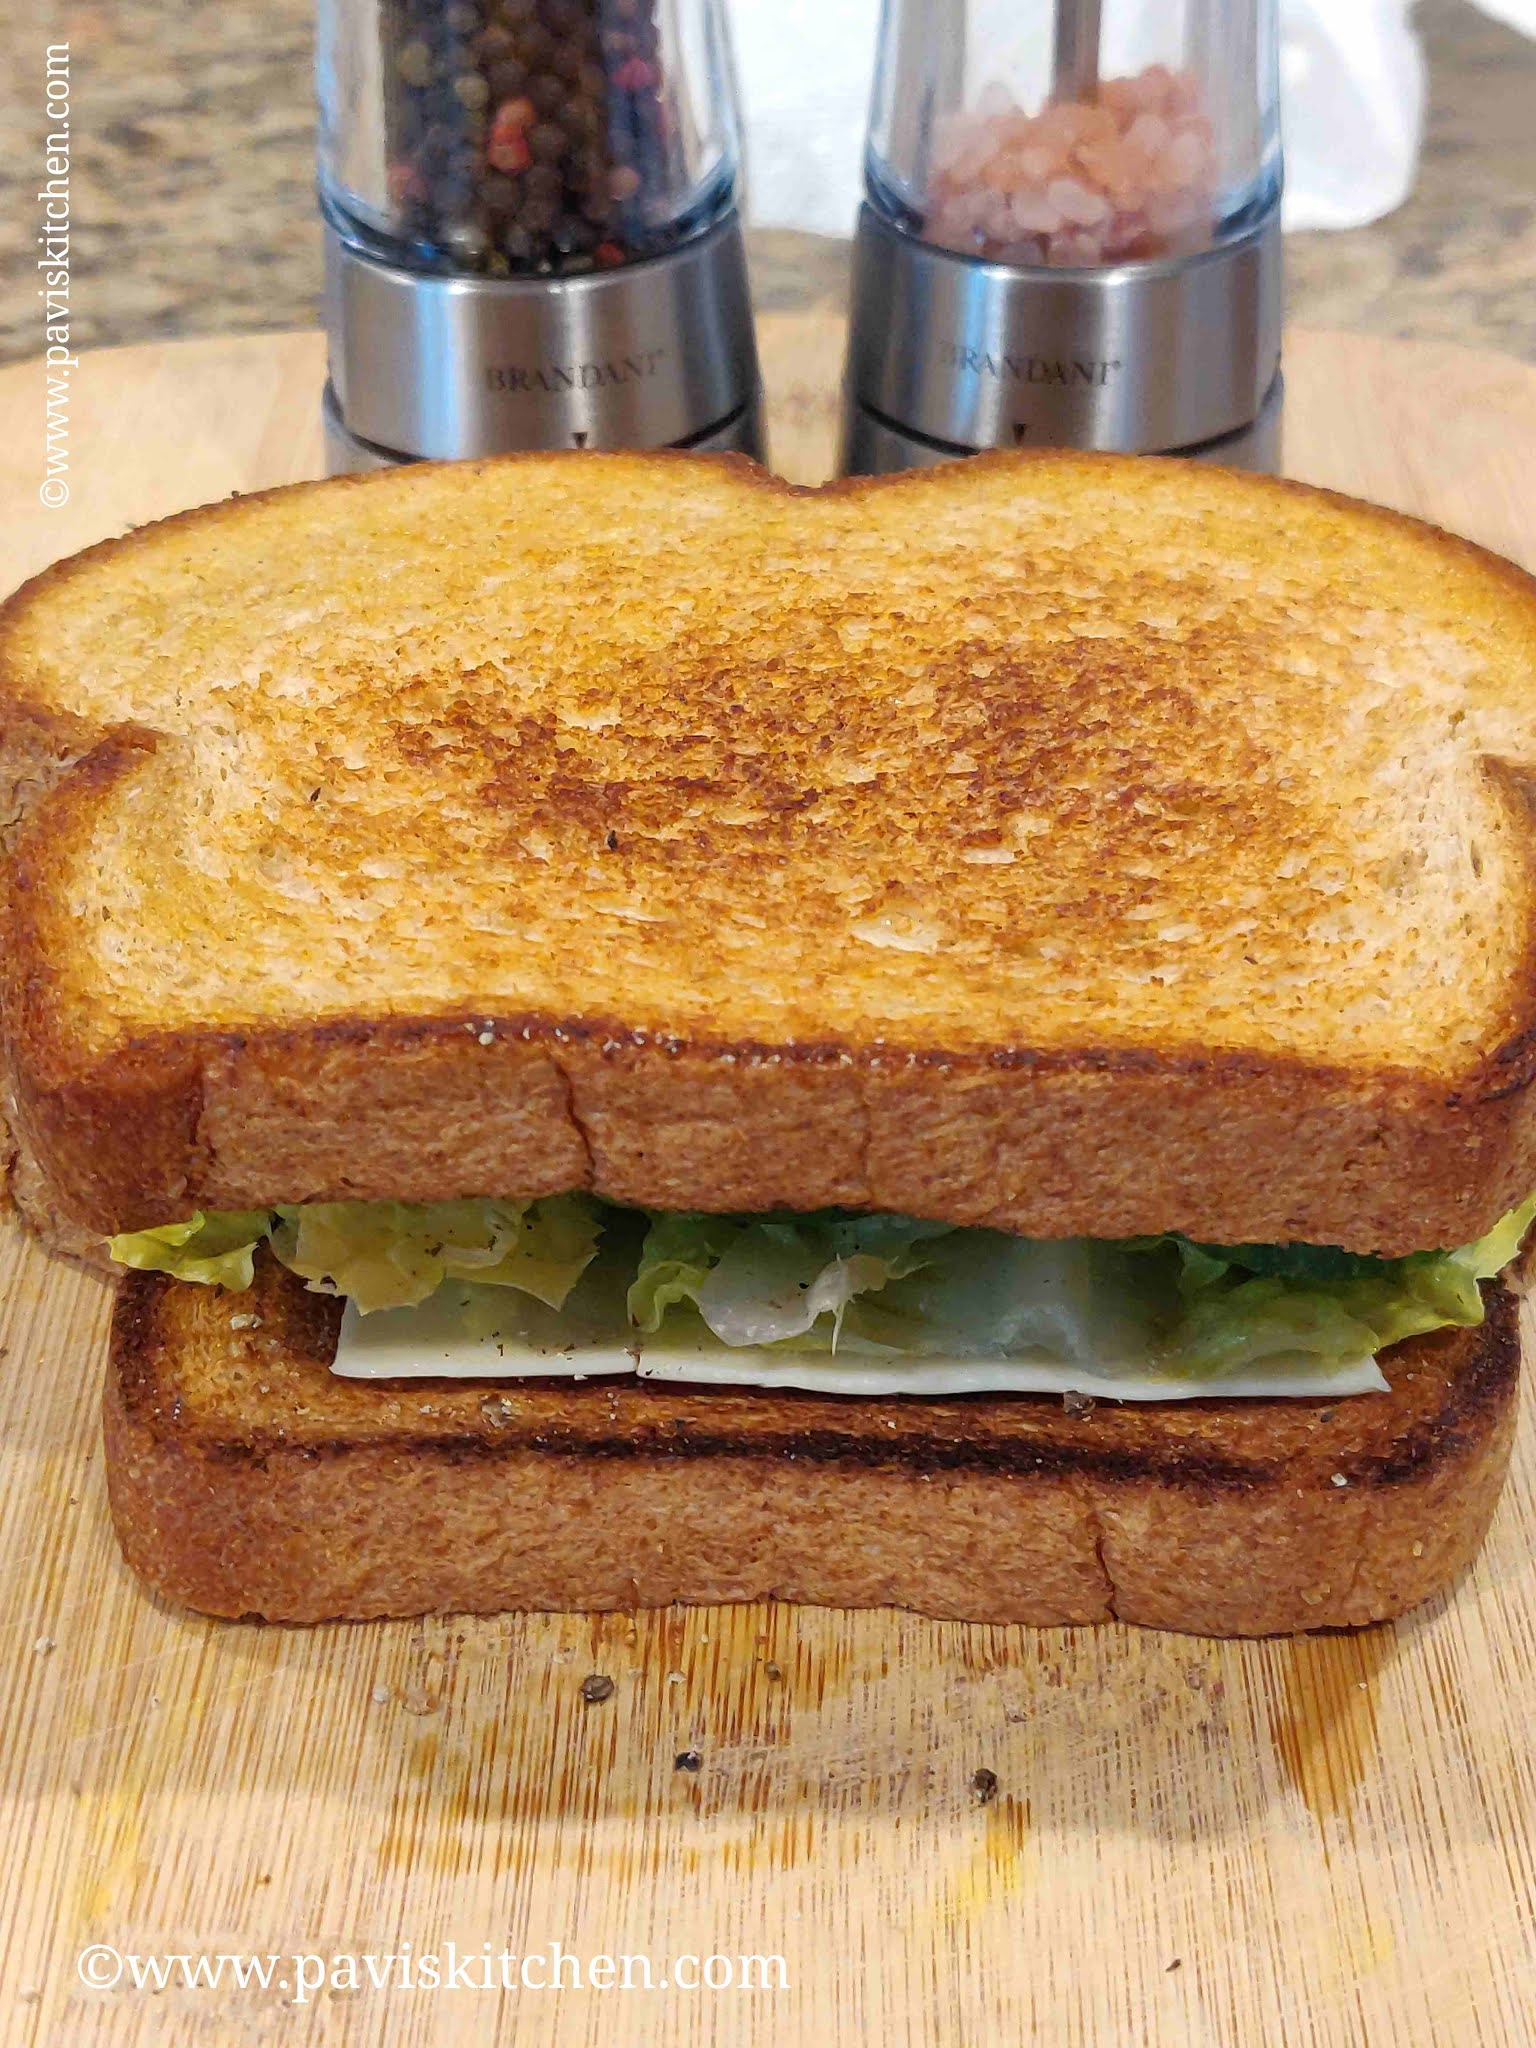 Veg cheese sandwich recipe | Indian vegetable cheese sandwich | on tawa/without grill